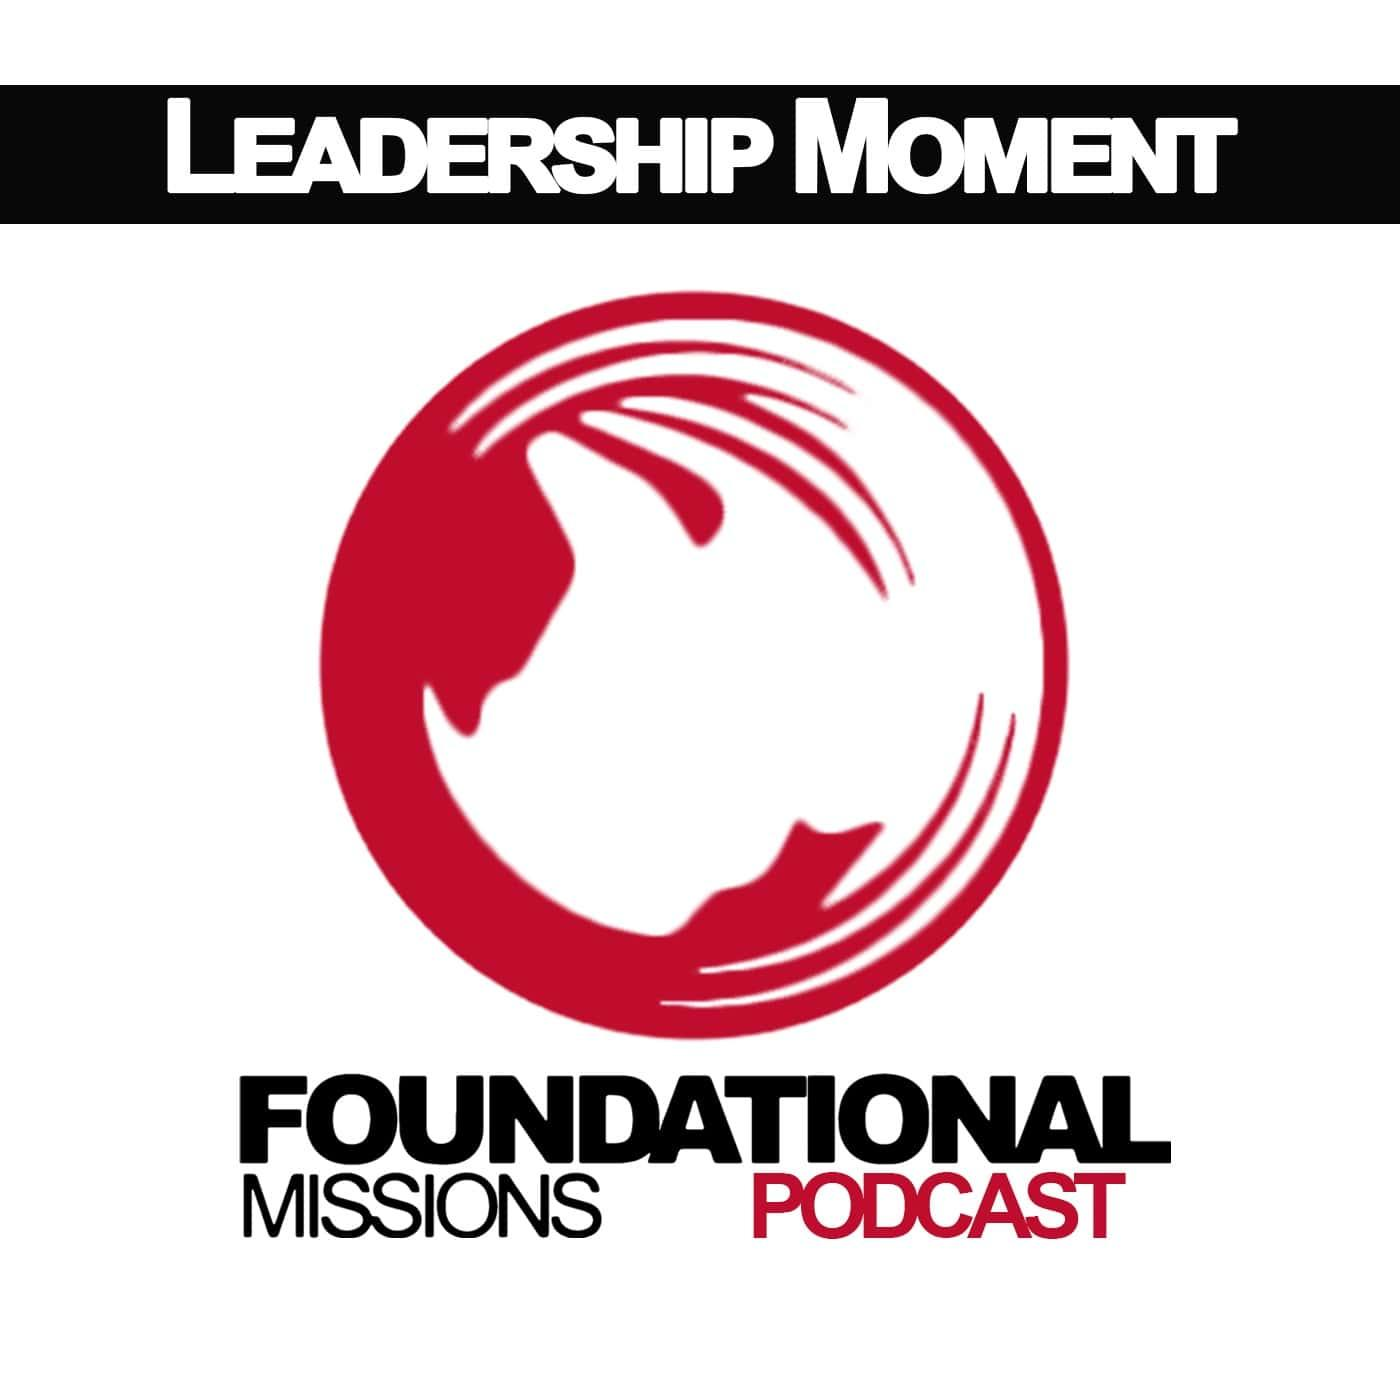 Artwork for On Location In Thailand - Tracy Lorensen On Women Leaders - Foundational Missions Leadership Moment  # 70